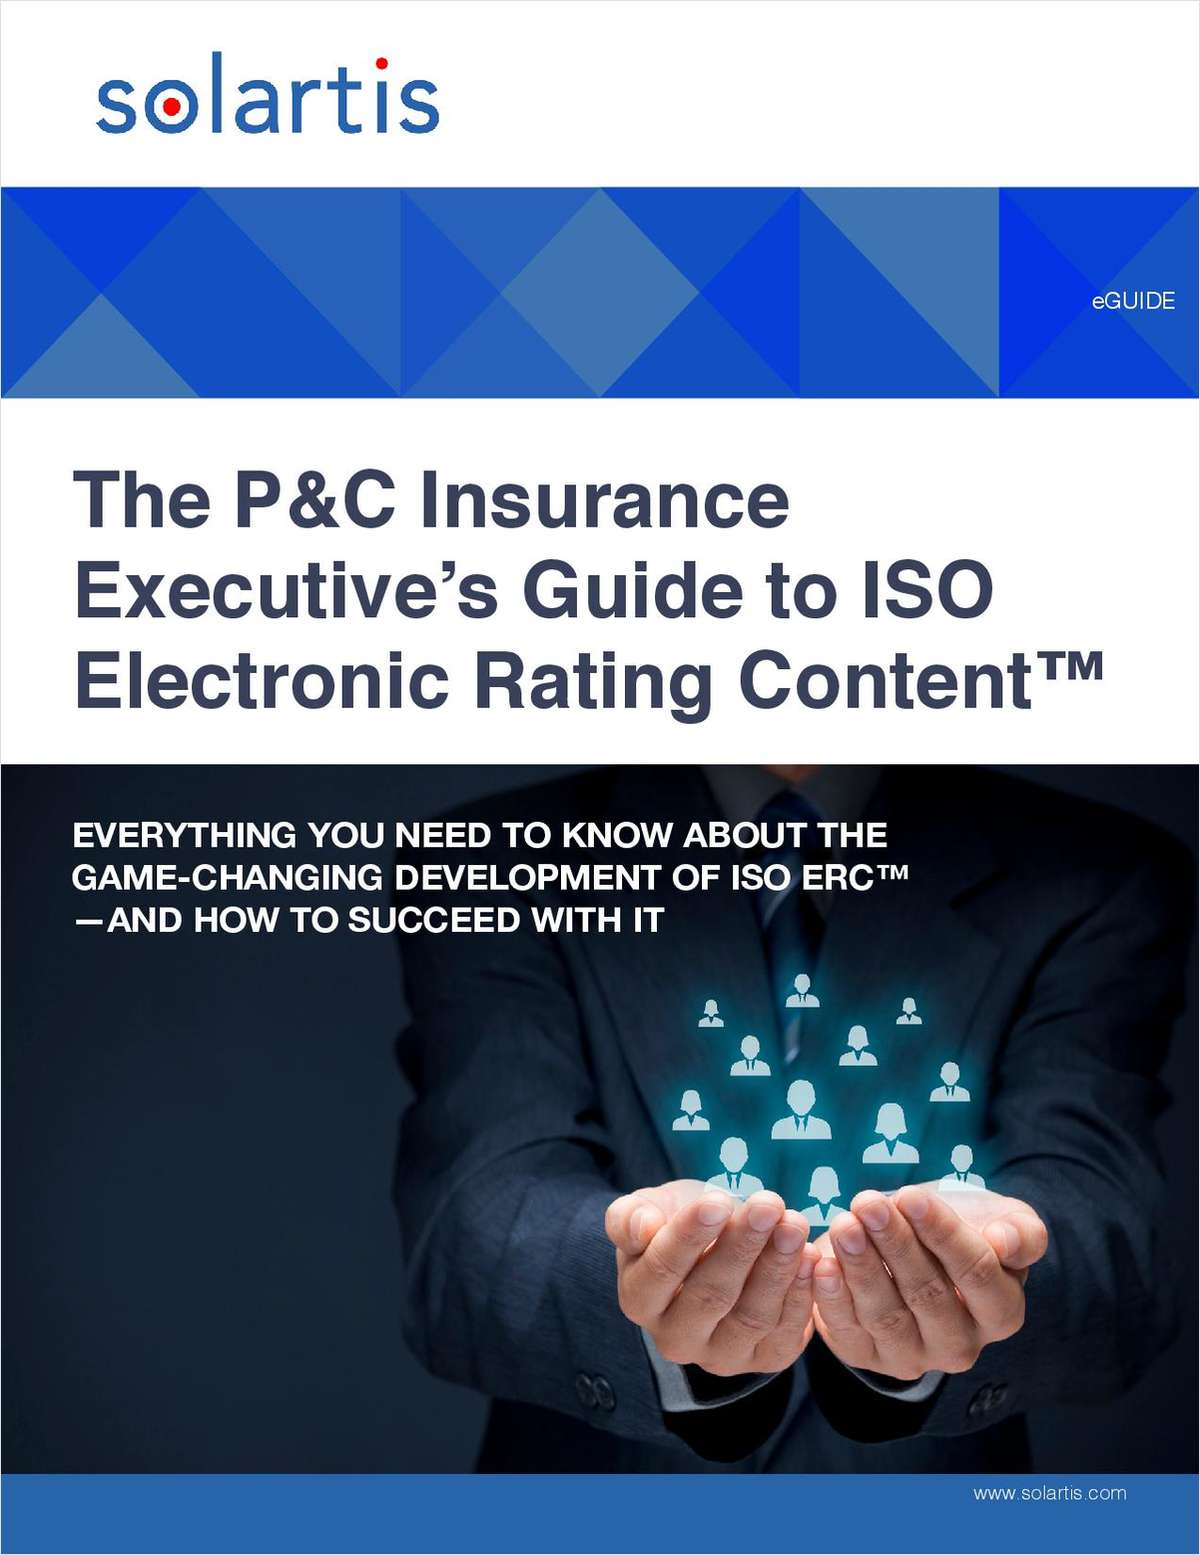 The P&C Insurance Executive's Guide to ISO Electronic Rating Content™